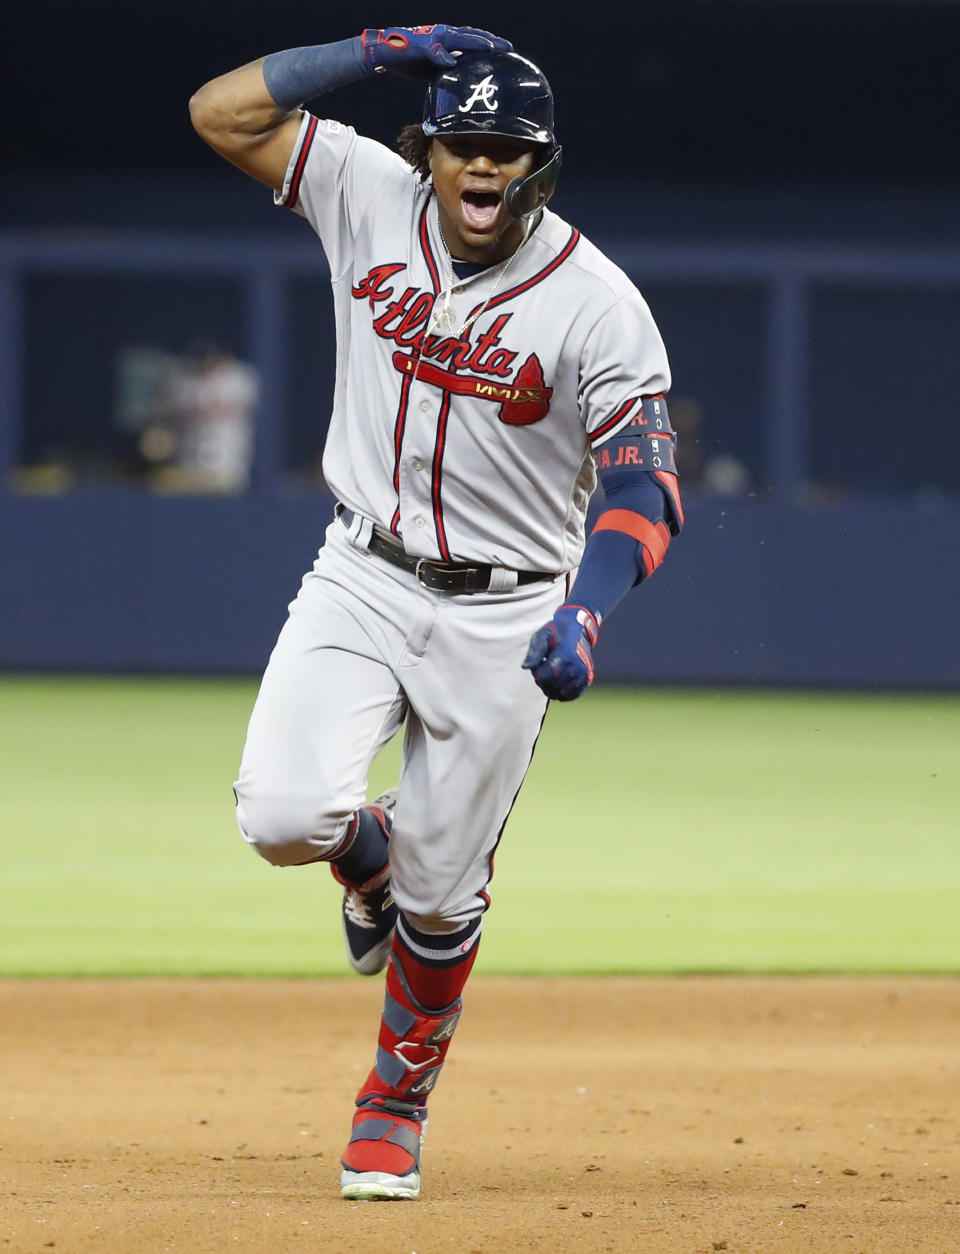 Atlanta Braves' Ronald Acuna Jr. celebrates as he rounds second base after he hit a three-run home run scoring Matt Joyce and Johan Camargo during the ninth inning of a baseball game against the Miami Marlins, Sunday, June 9, 2019, in Miami. The Braves defeated the Marlins 7-6 in 12 innings. (AP Photo/Wilfredo Lee)